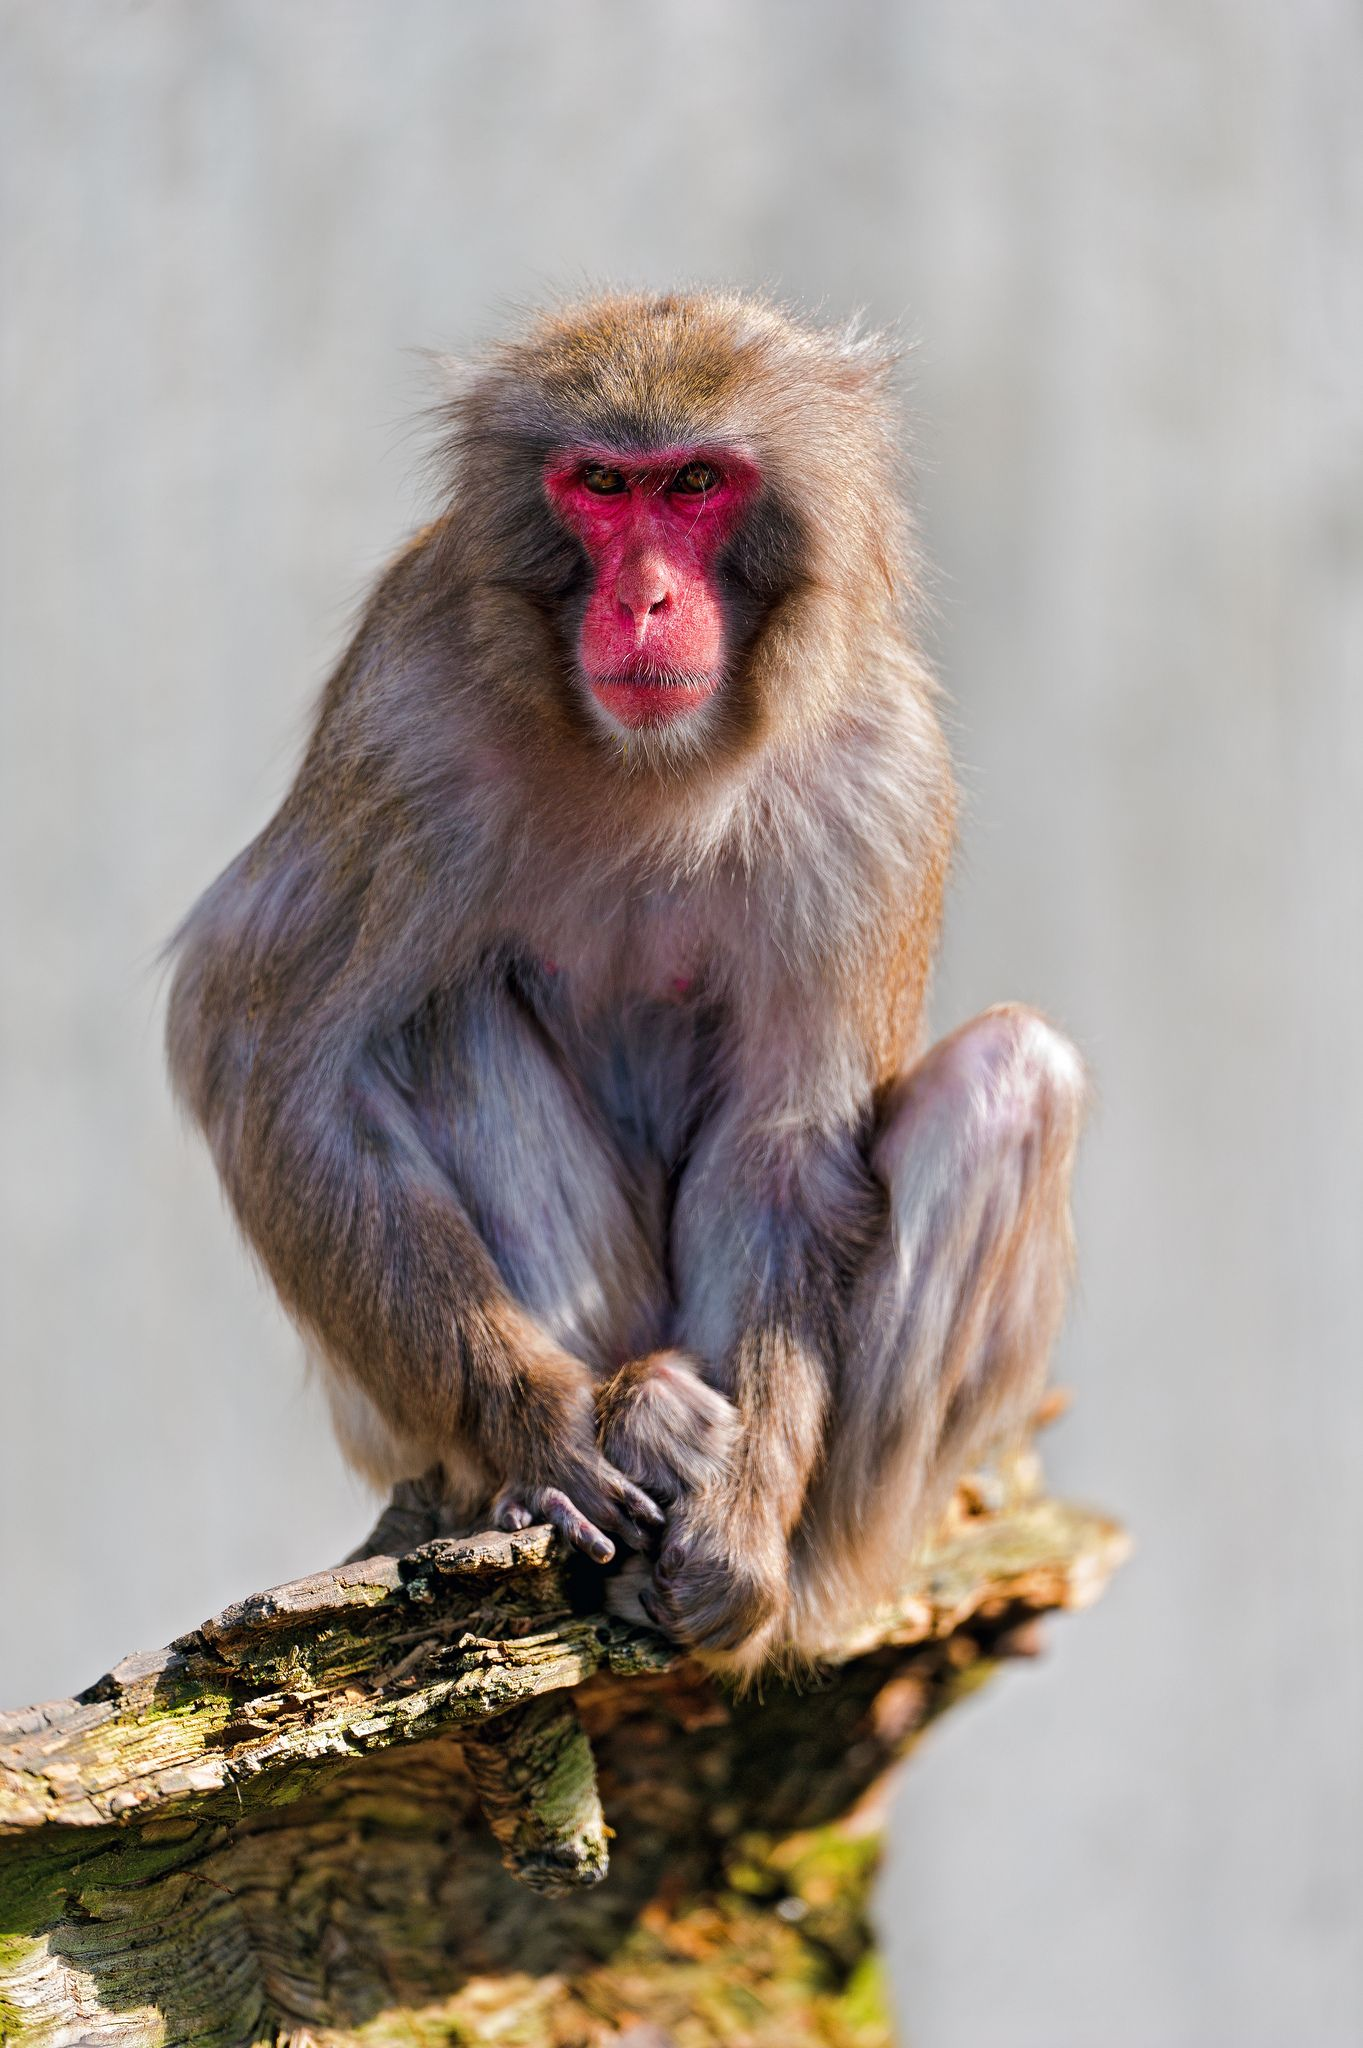 A Japanese (red headed) macaque sitting at the end of a stone and looking towards me.